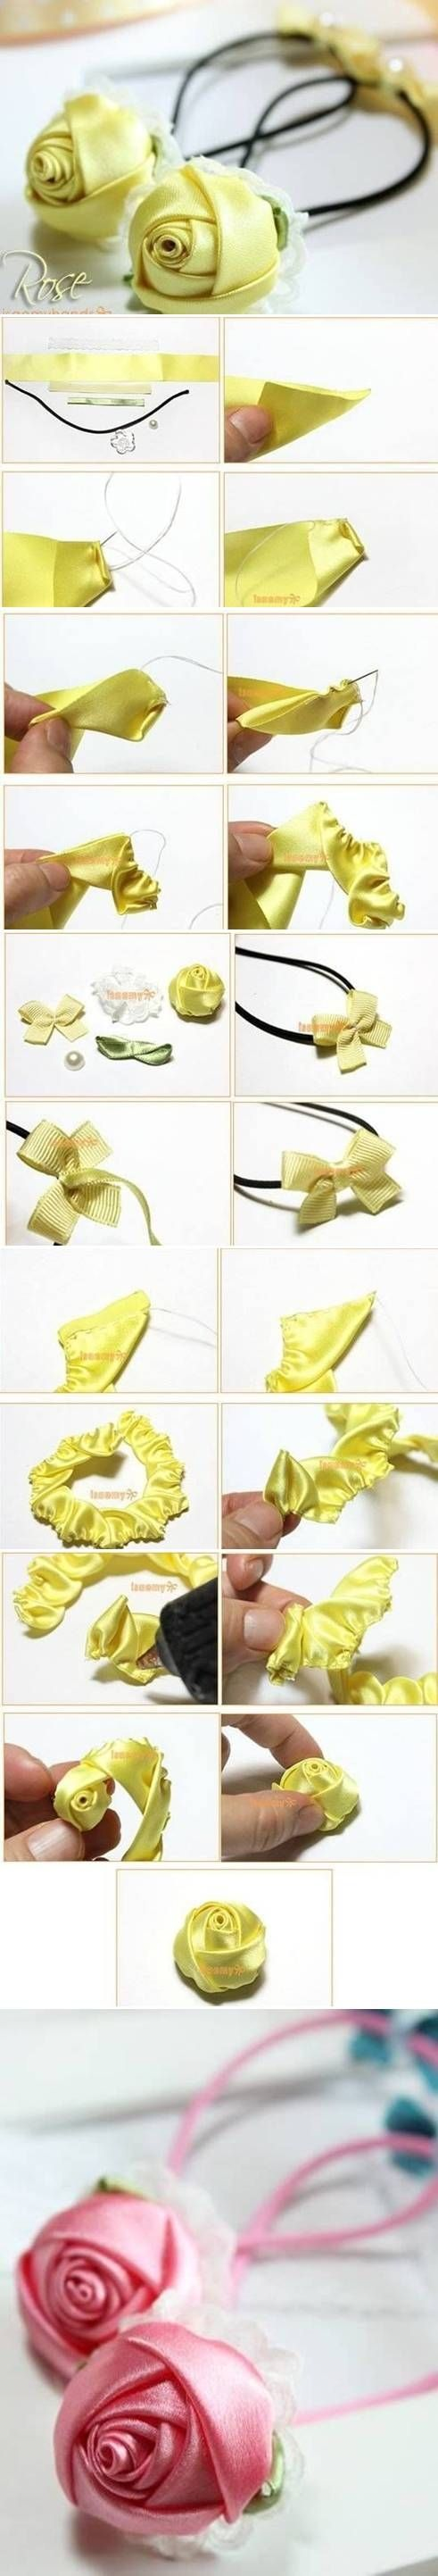 DIY Simple Quick Satin Ribbon Rose rose ribbon diy satincrafts DIY home made easy crafts craft idea crafts ideas flowers DIY ideas DIY crafts DIY idea do it yourself flowers diy projects diy craft handmade diy ideas diy tutorial ideas